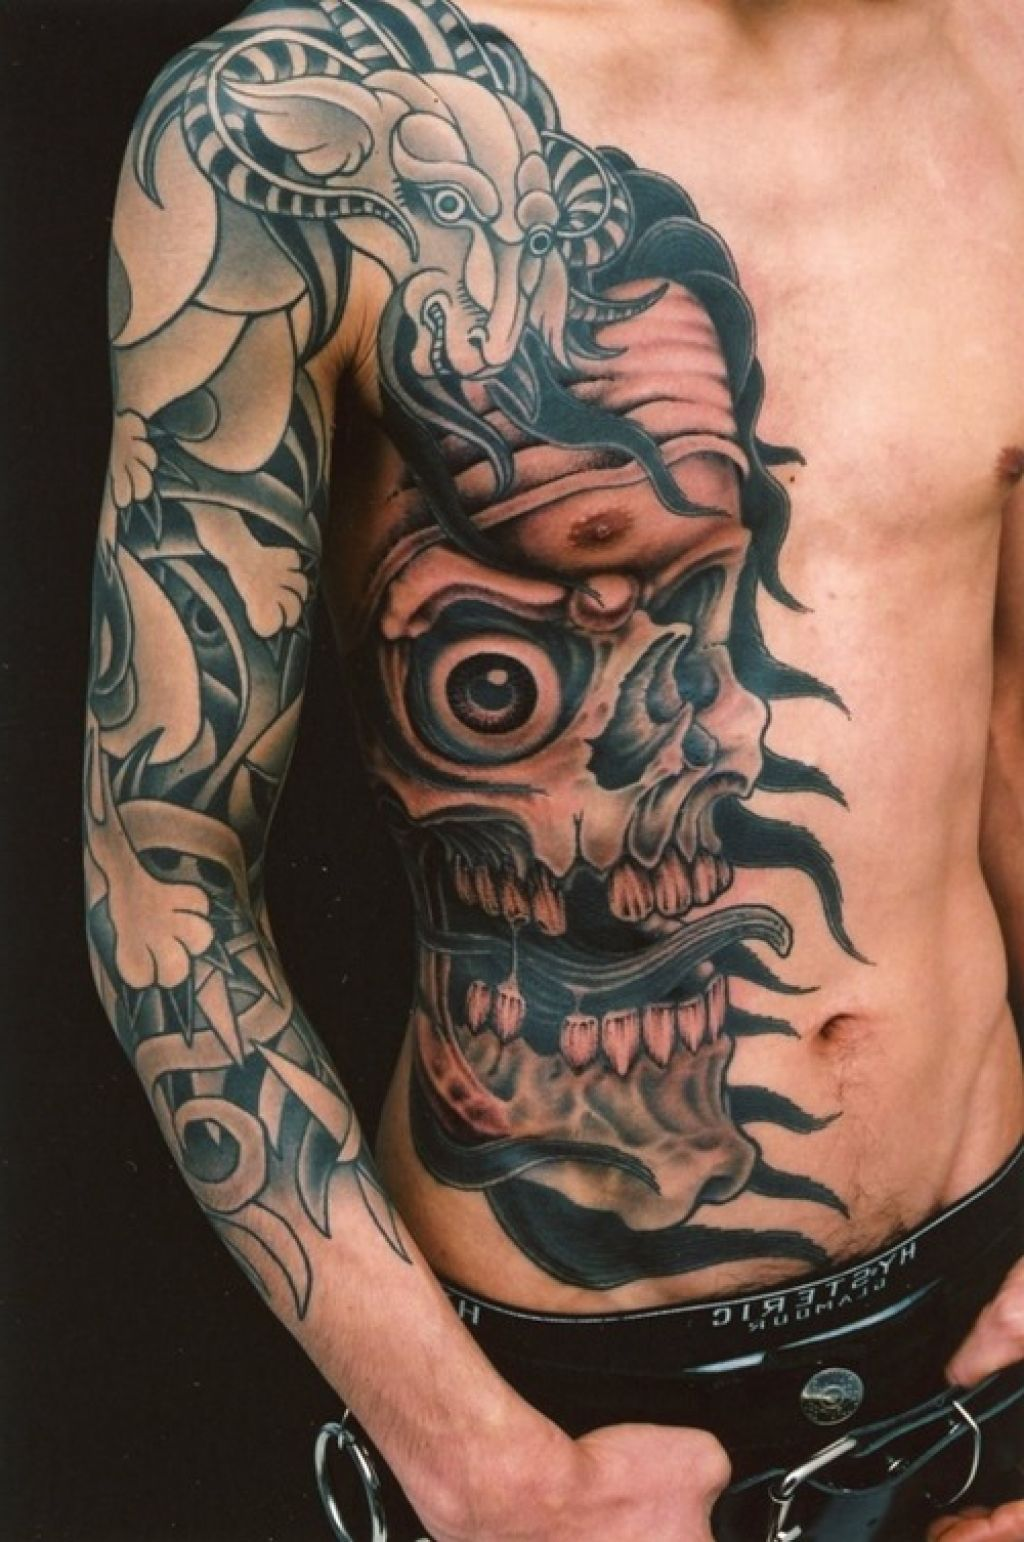 Cool Tattoo Designs Small: 50 Cool Tattoo Ideas For Awesome Inspiration